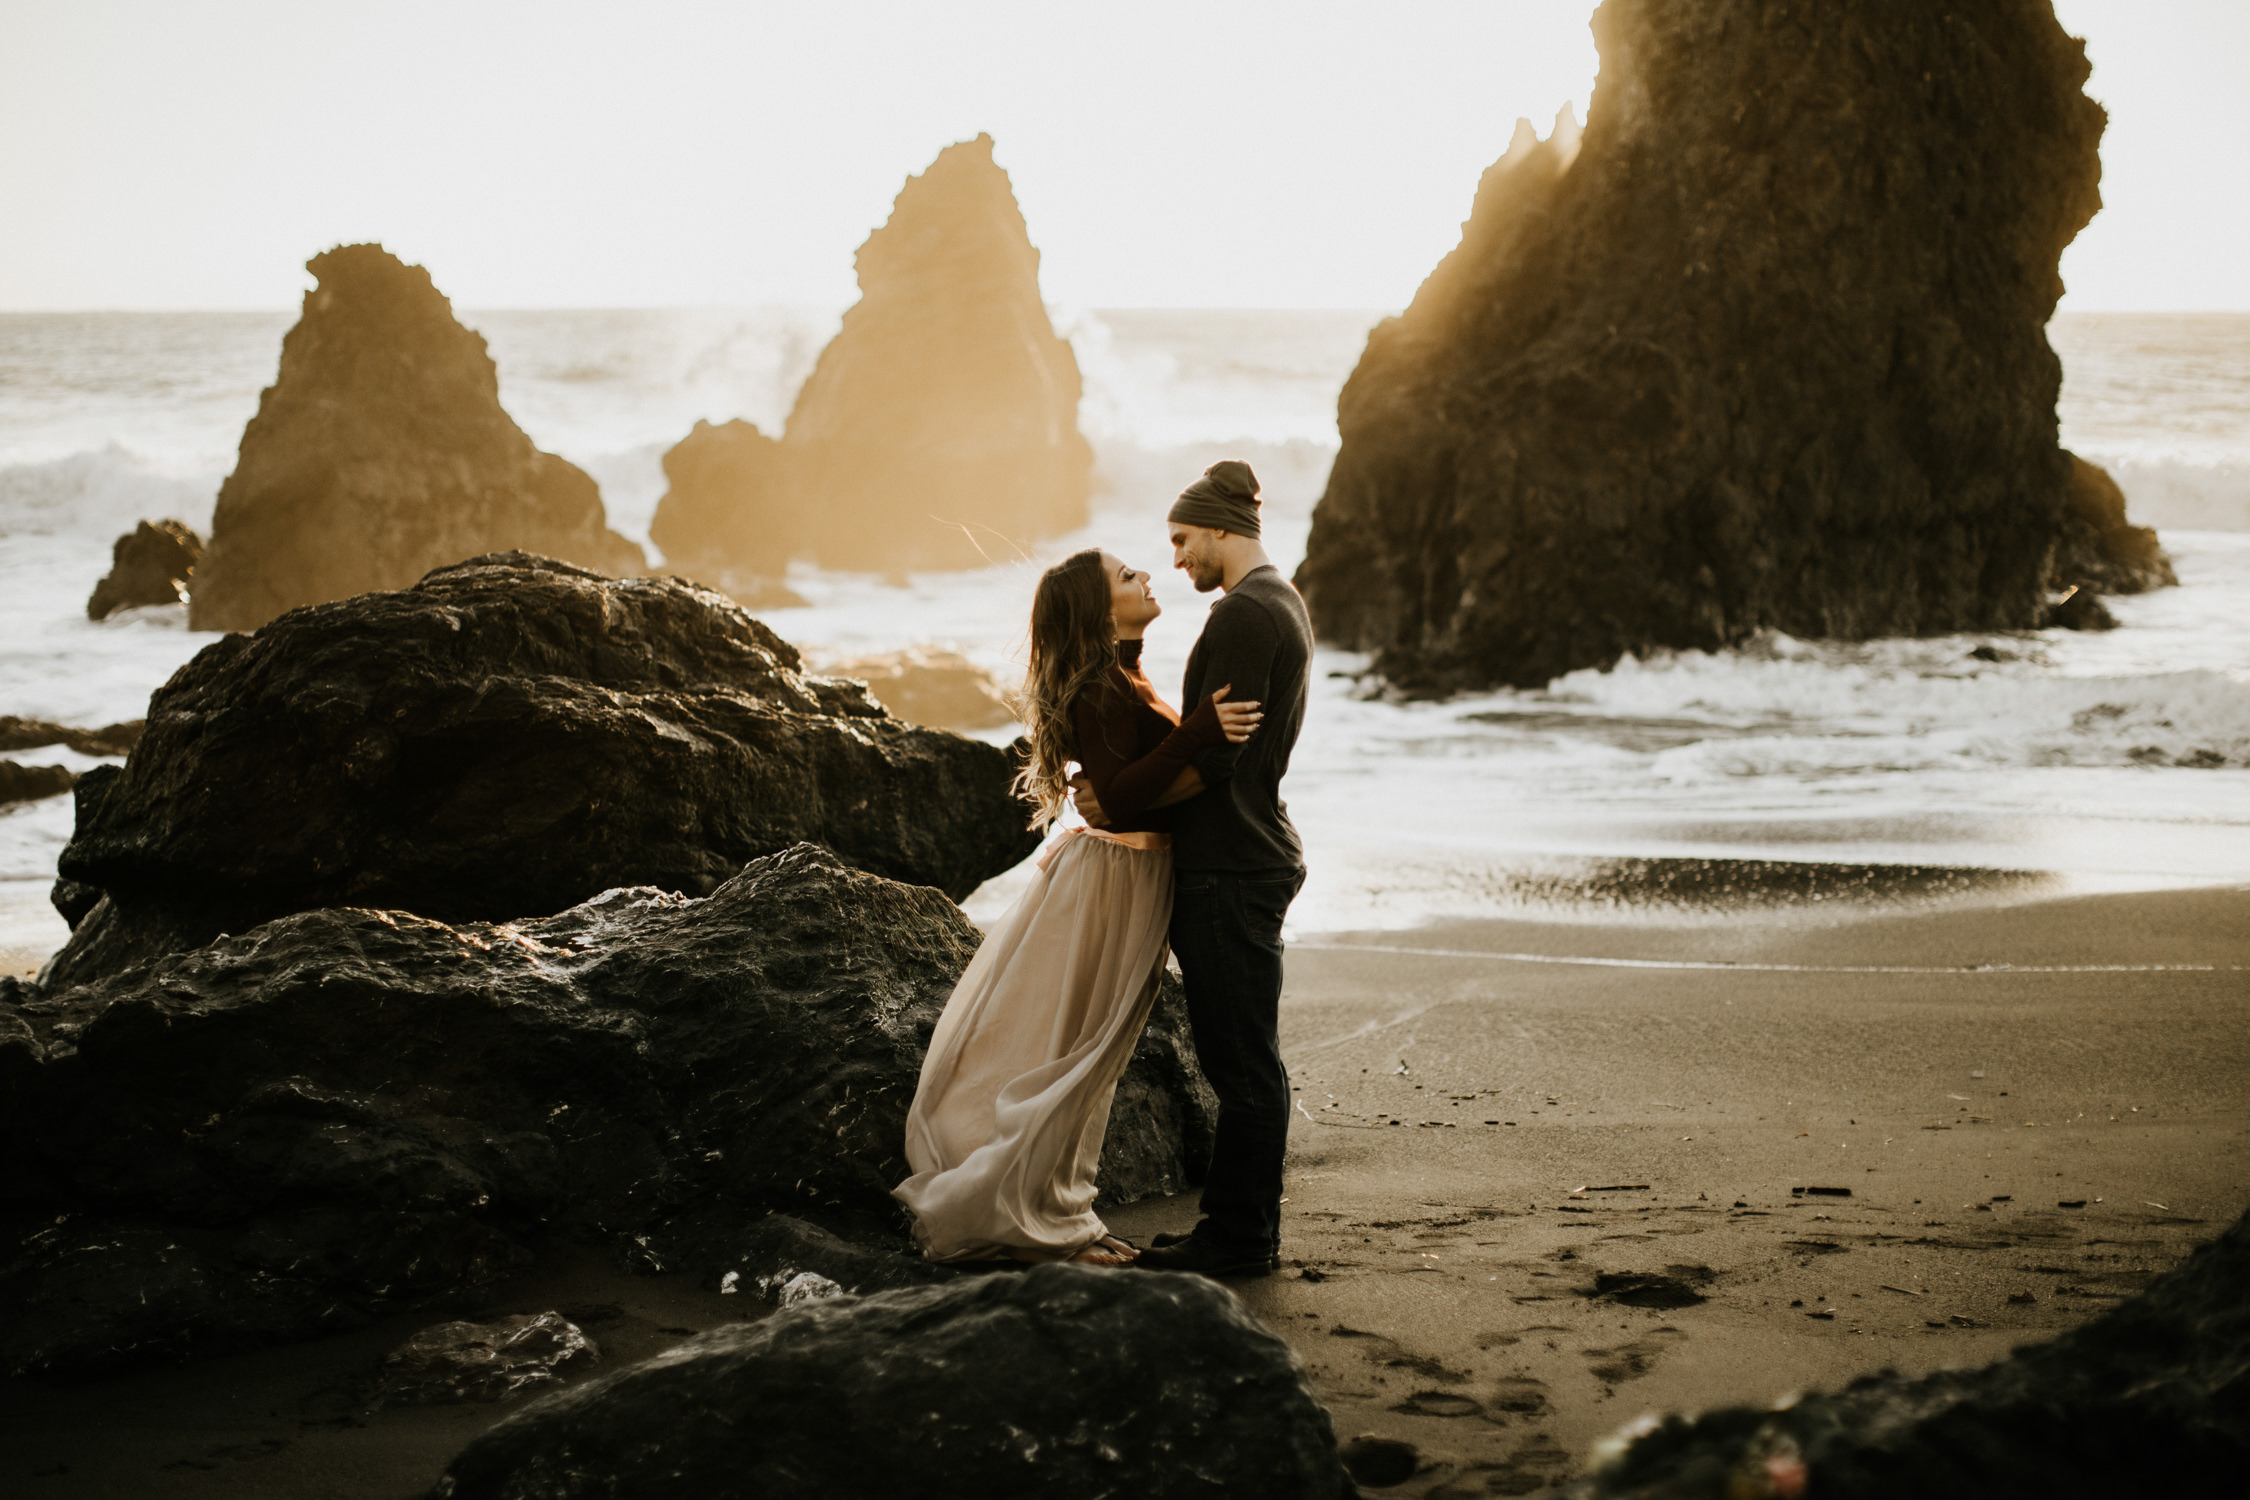 couple-intimate-engagement-session-sausalito-california-42.jpg